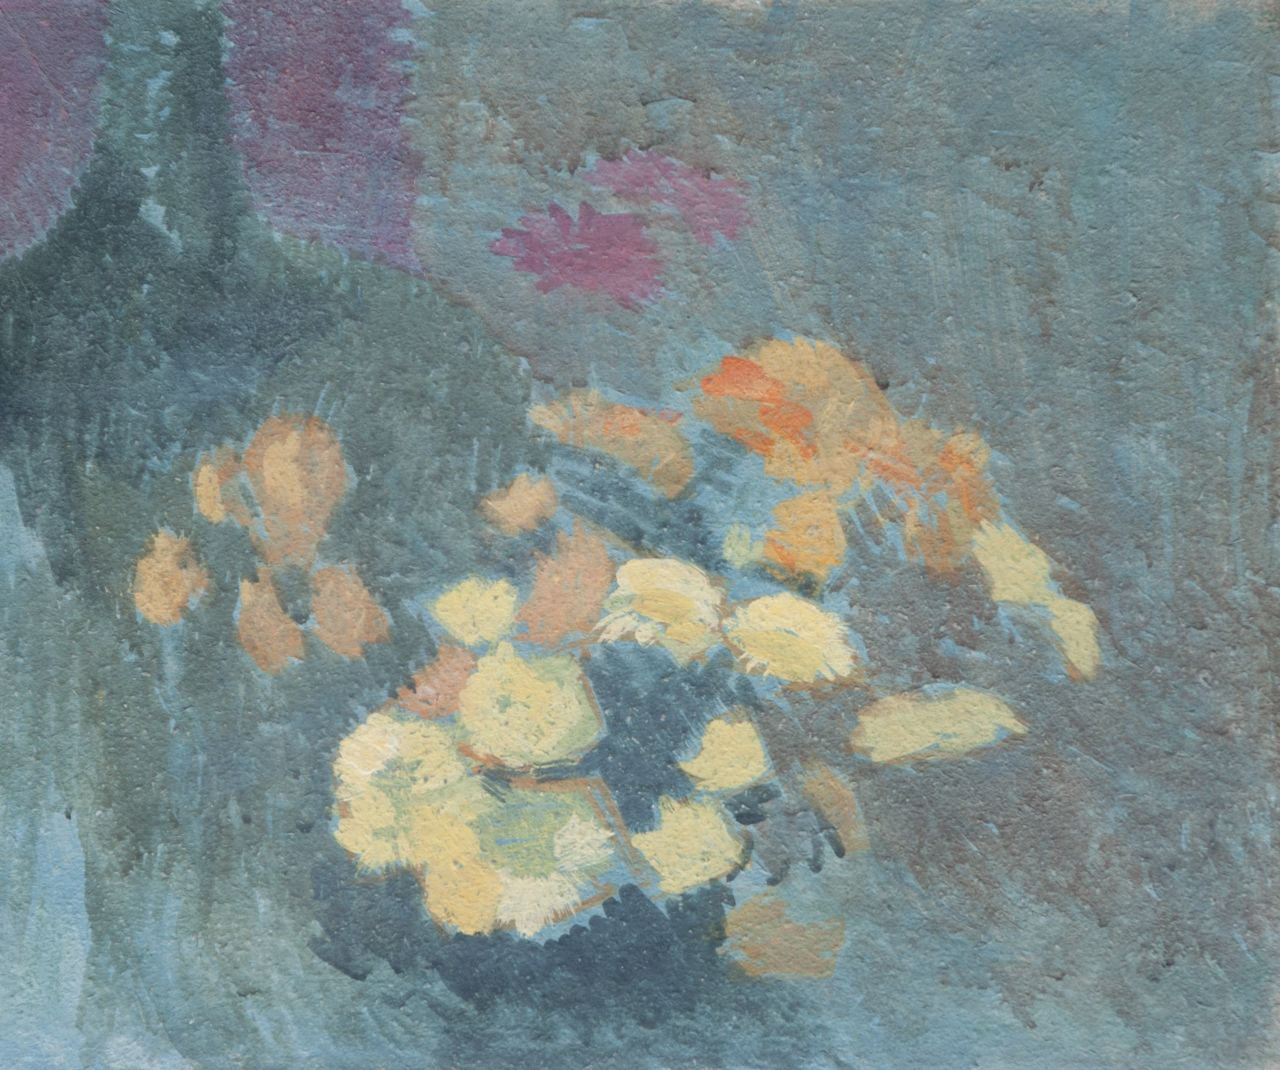 Maurice Sys | Still-life of yellow and orange flowers, gouache on board, 40.8 x 50.5 cm